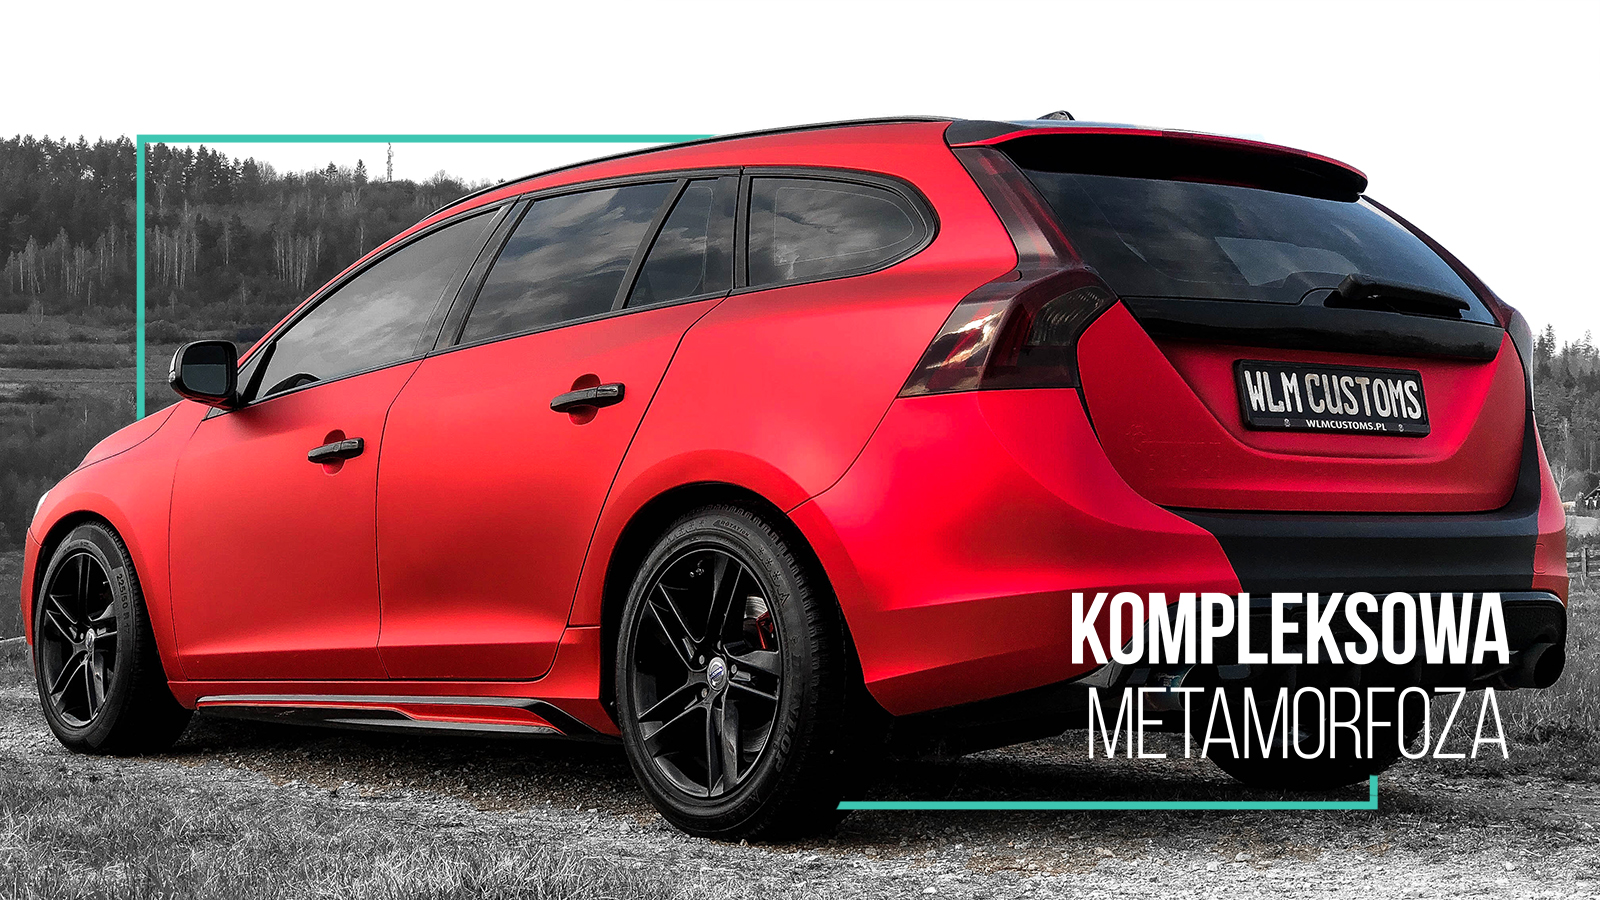 Volvo V60 R-Design - Kompleksowa metamorfoza by WLM Customs